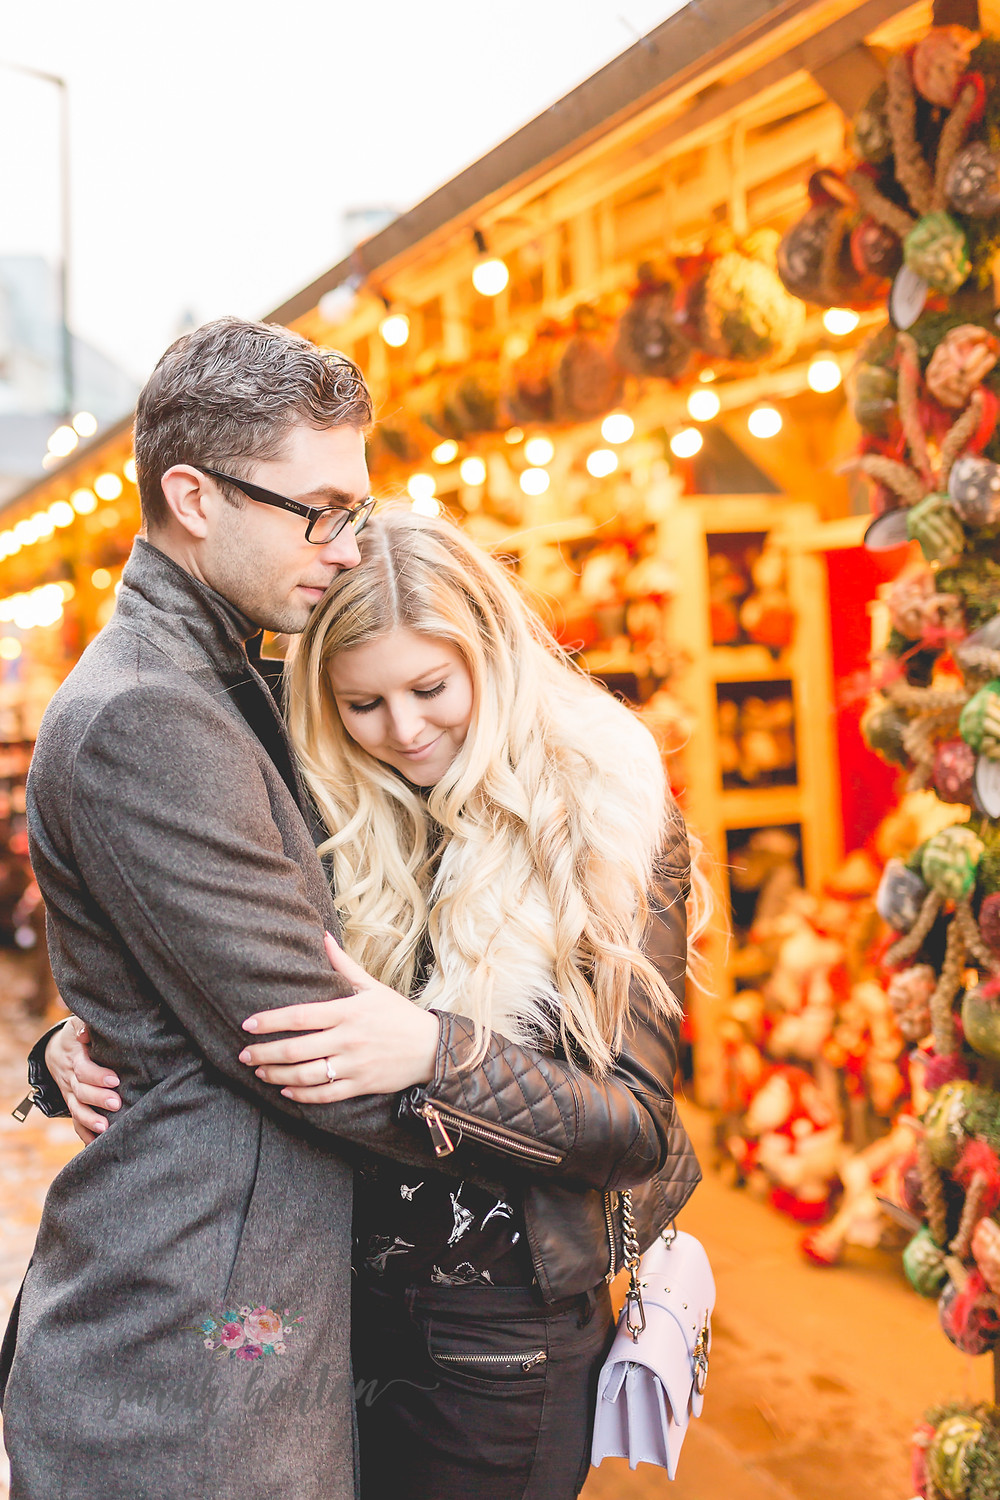 engagement photography in manchester markets at christmas